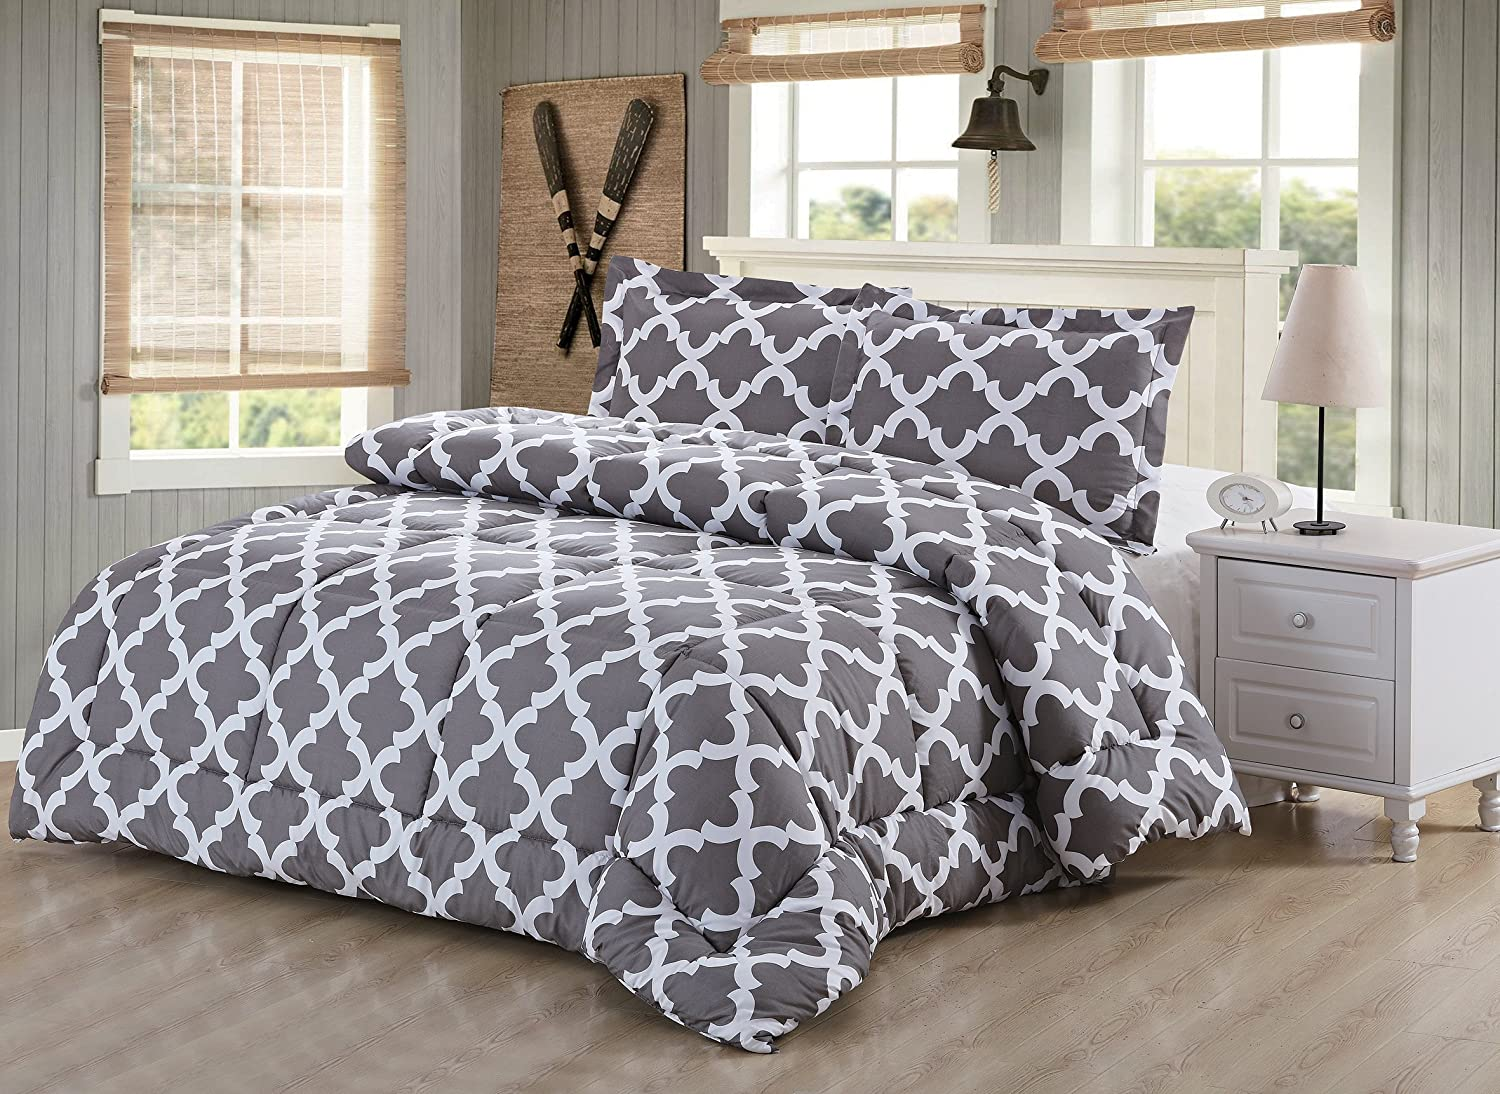 Printed Comforter Set Grey, Queen